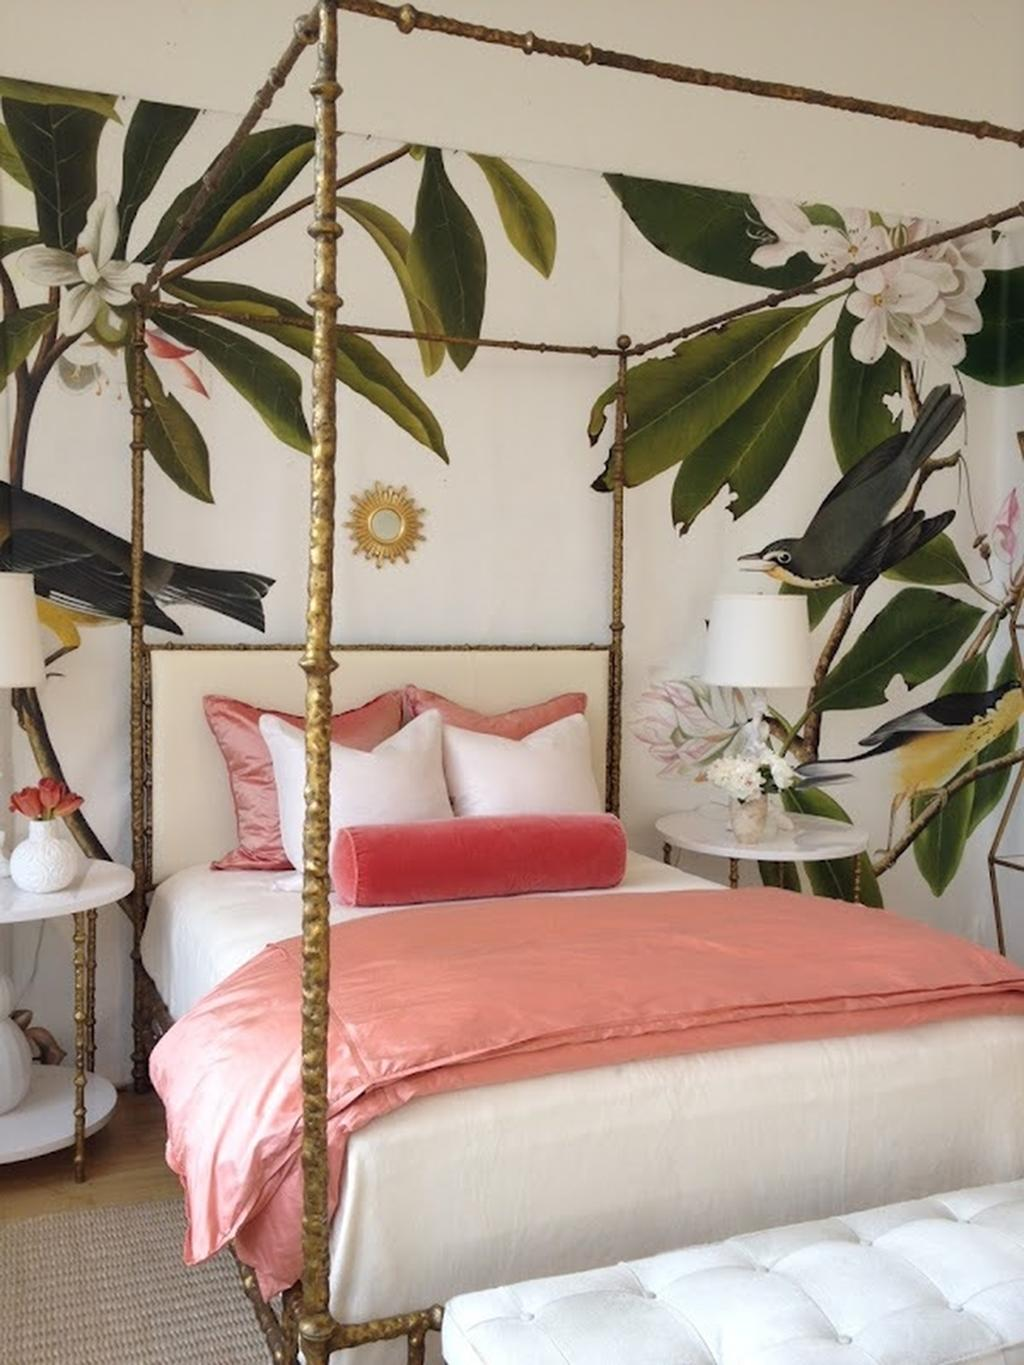 Leaf Mural Botanical Bedroom Wallpaper How to Decorate with Living Coral Pantone's Color of the Year